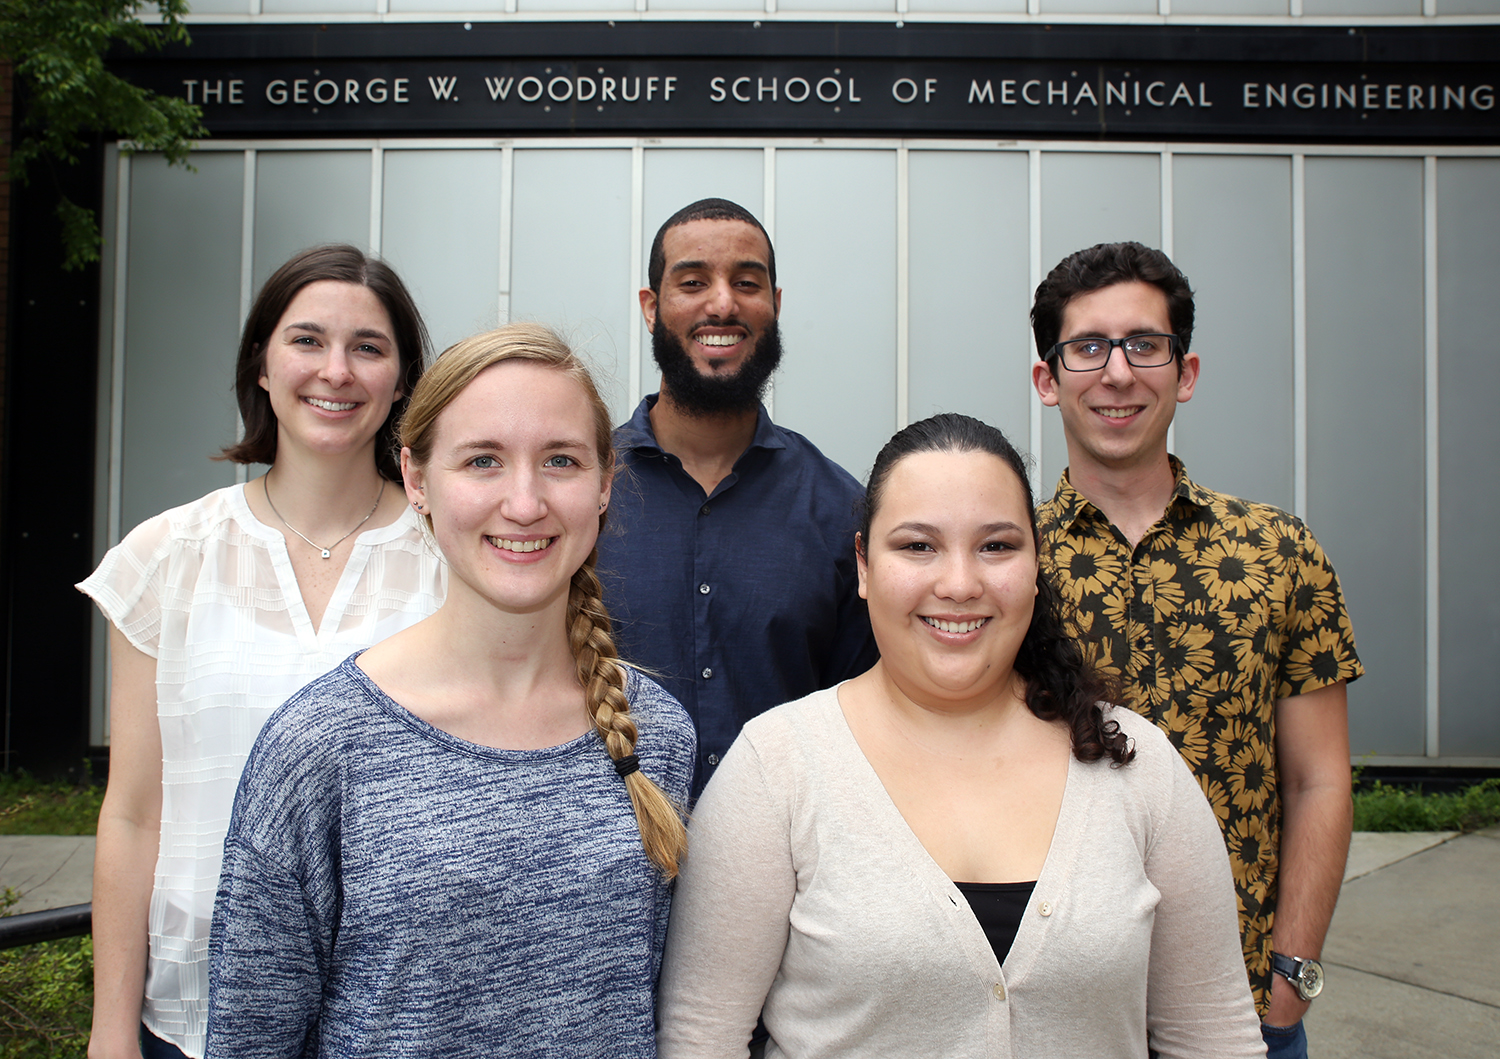 Woodruff School NSF Graduate Fellowship winners